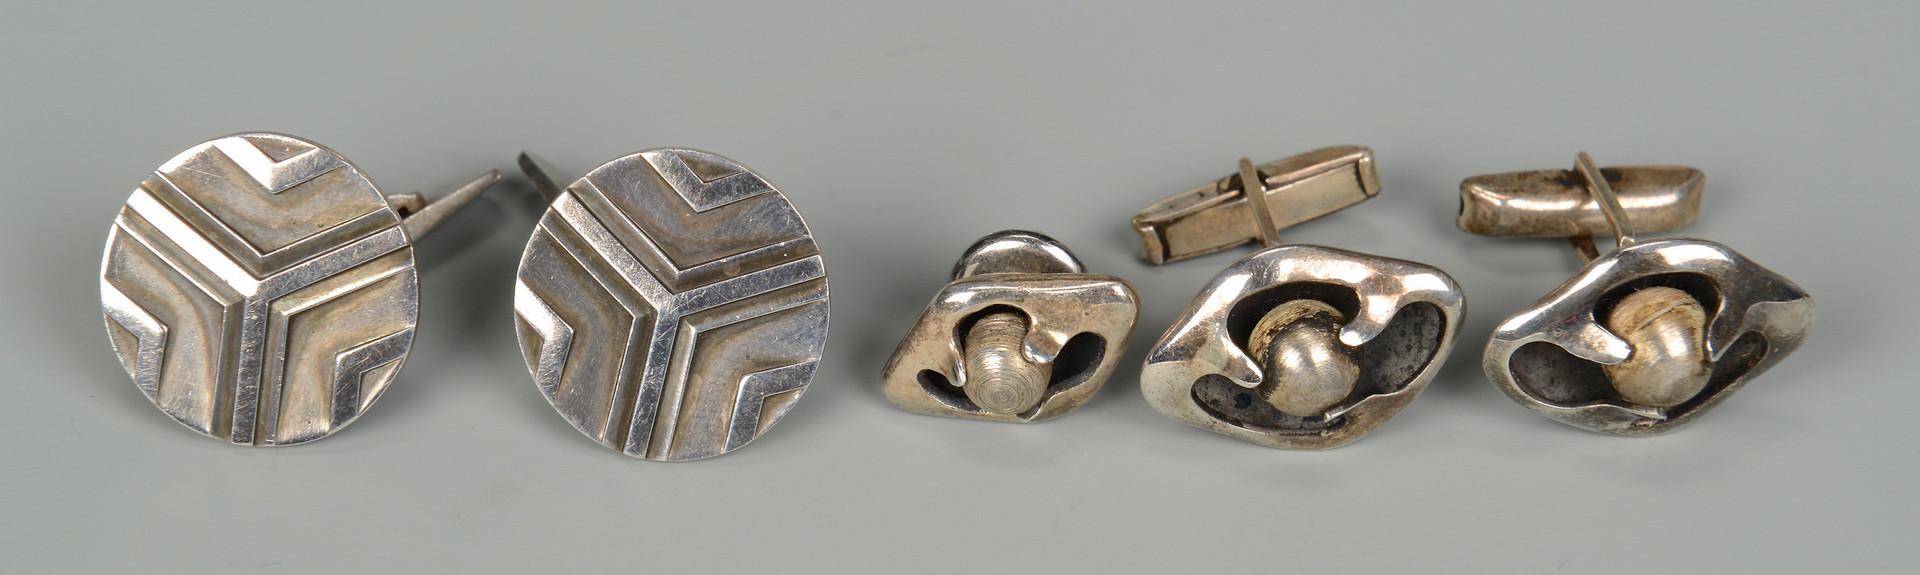 Lot 273: Grouping Sterling Jewelry Items